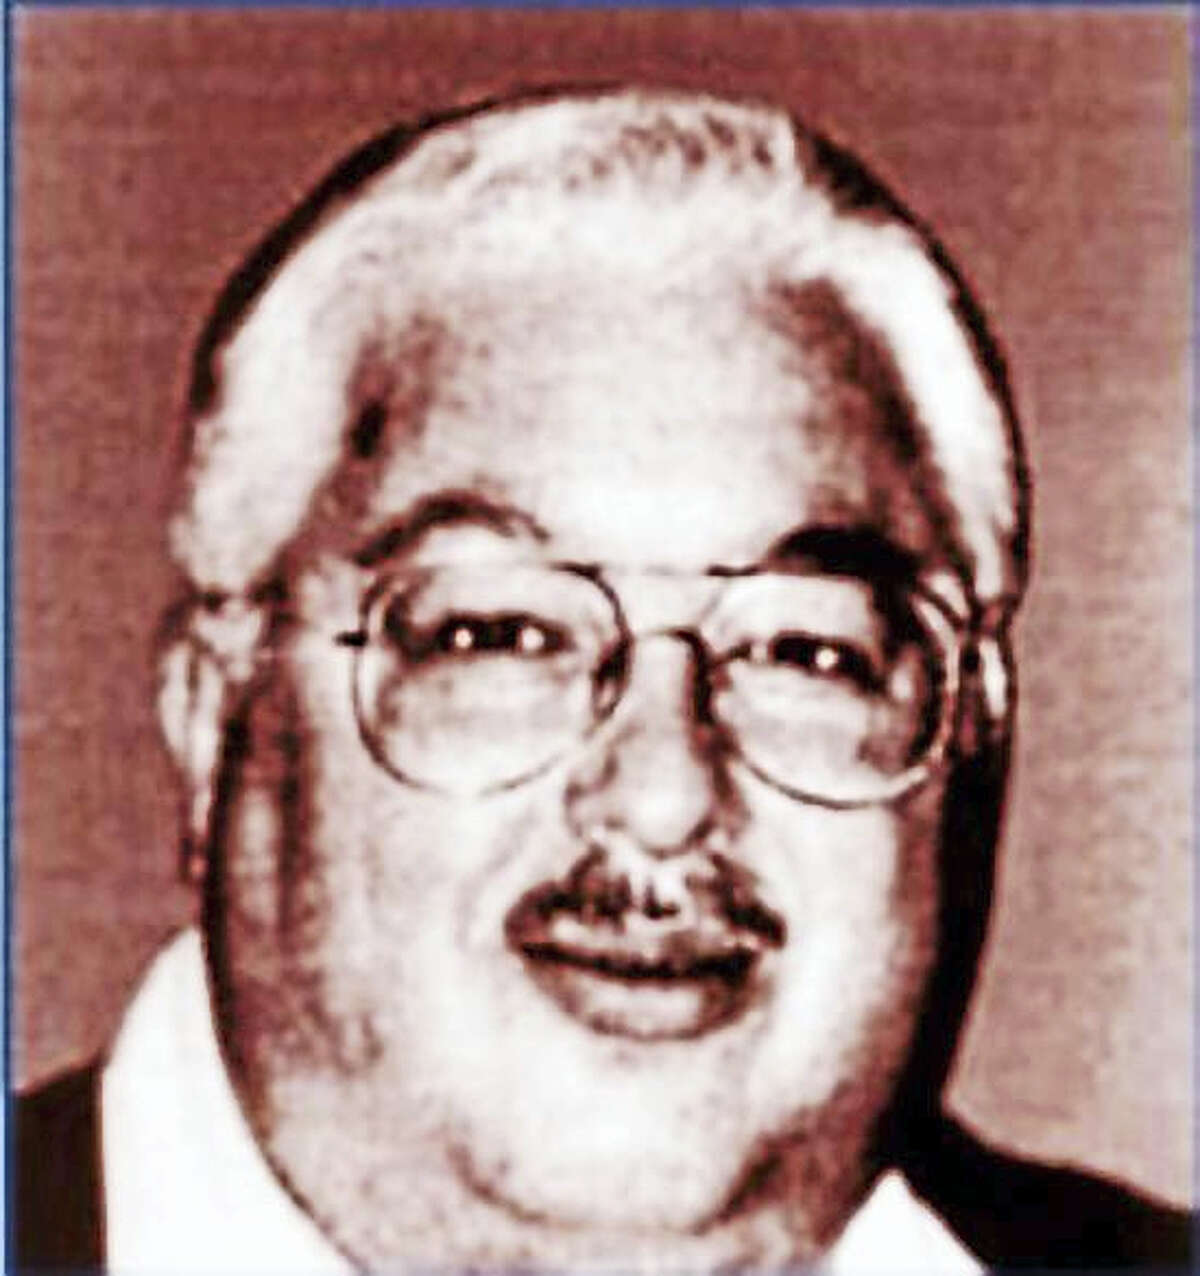 Auxiliary Trooper Phillip Mingione, who was fatally struck in May 1994 on Interstate 91 in North Haven.